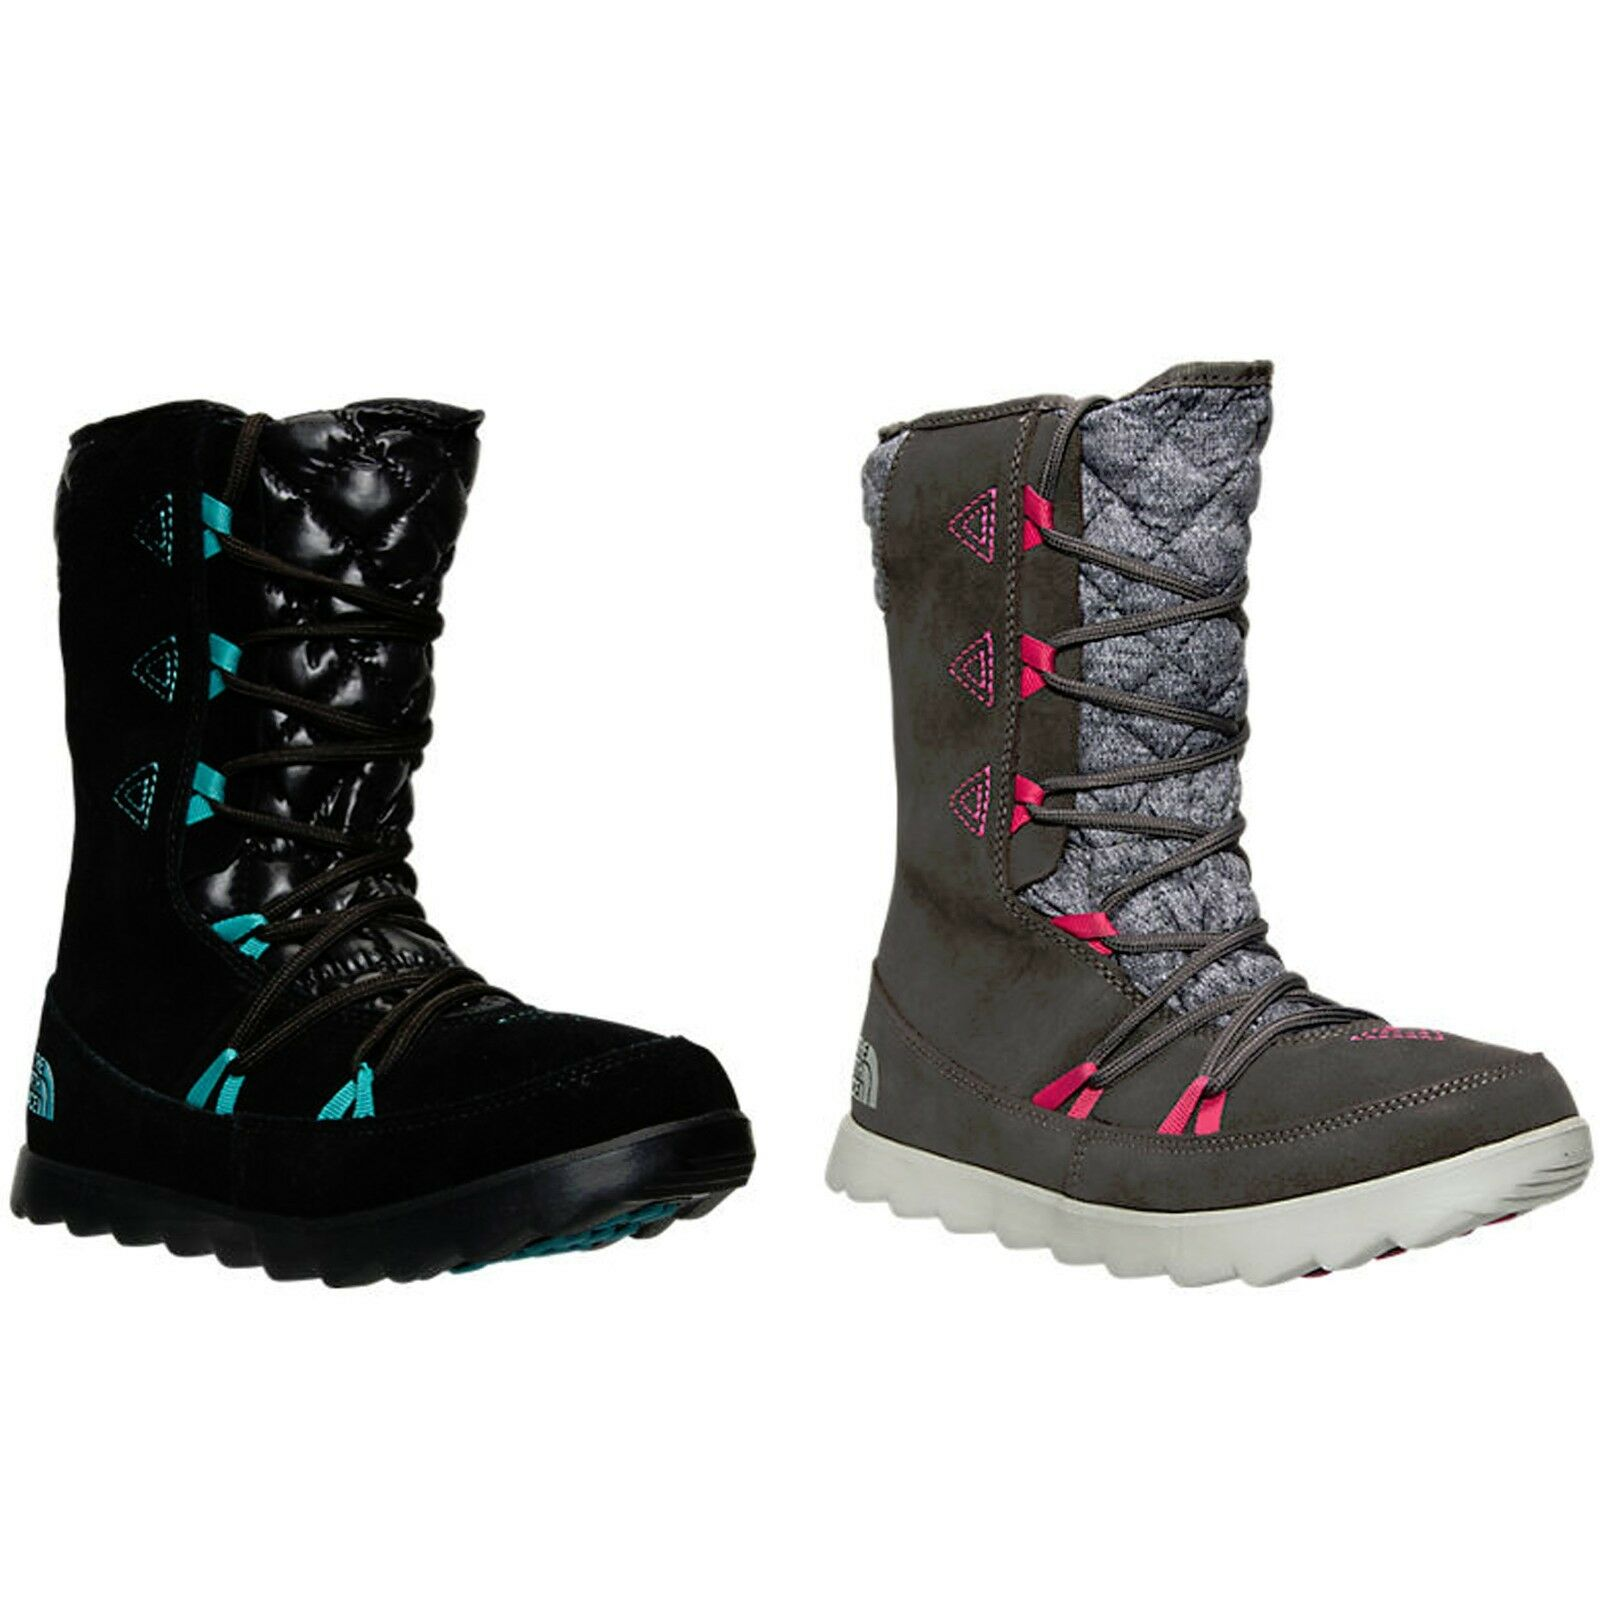 The North Face Damenschuhe Thermoball Apres Snow Bootie Cold Weather Winter Snow Apres Ski Stiefel 2eee73